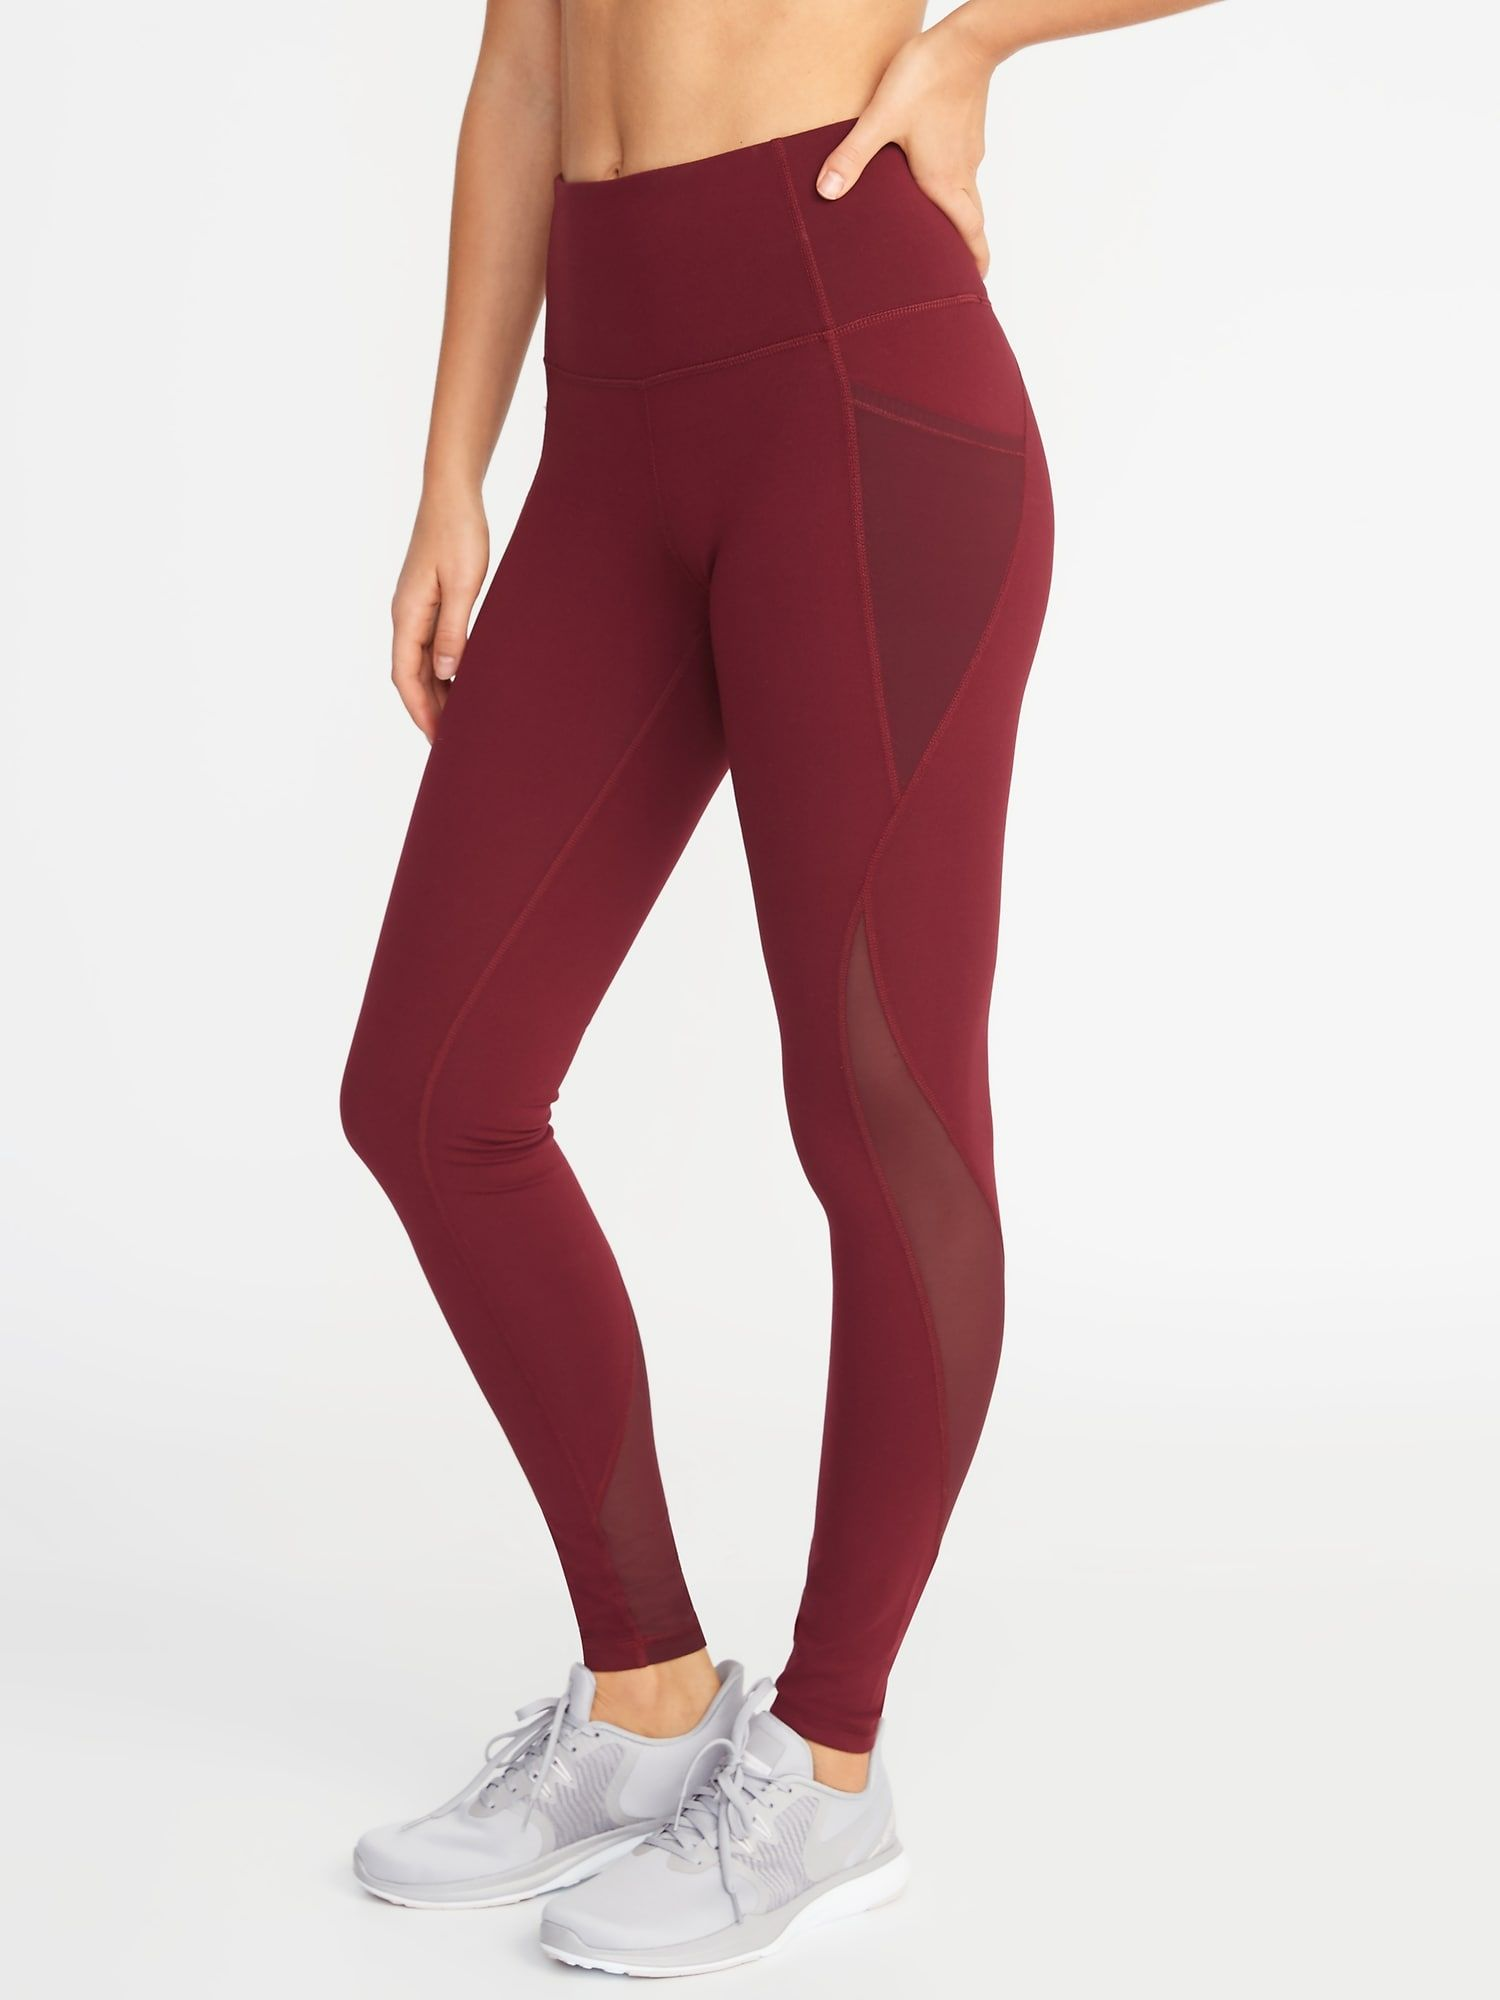 d524b82c21bd1 Best Leggings With Pockets - Workout Leggings With Pockets